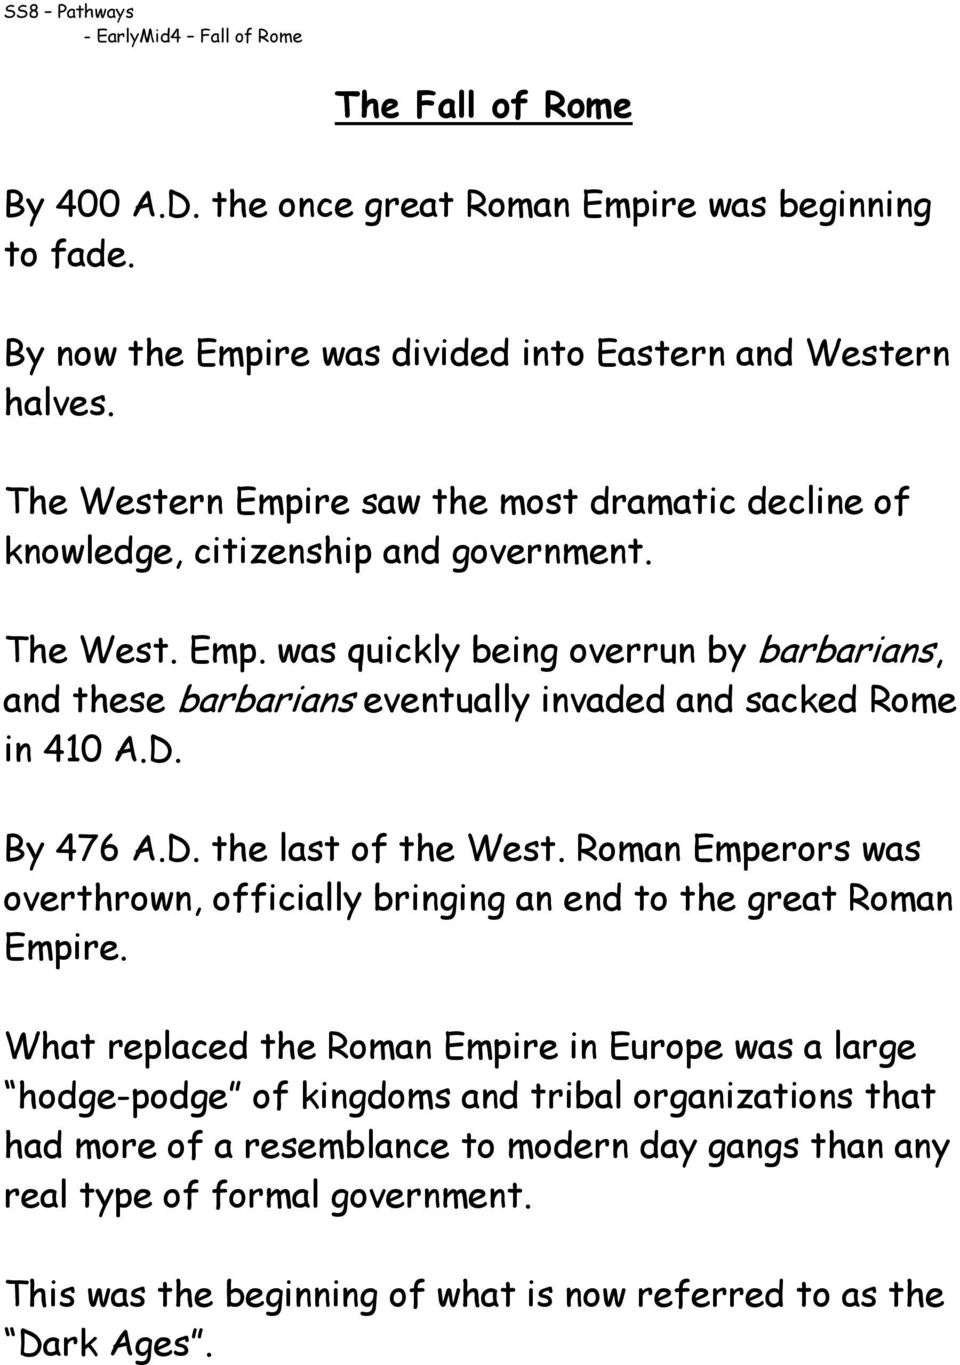 D. By 476 A.D. the last of the West. Roman Emperors was overthrown, officially bringing an end to the great Roman Empire.